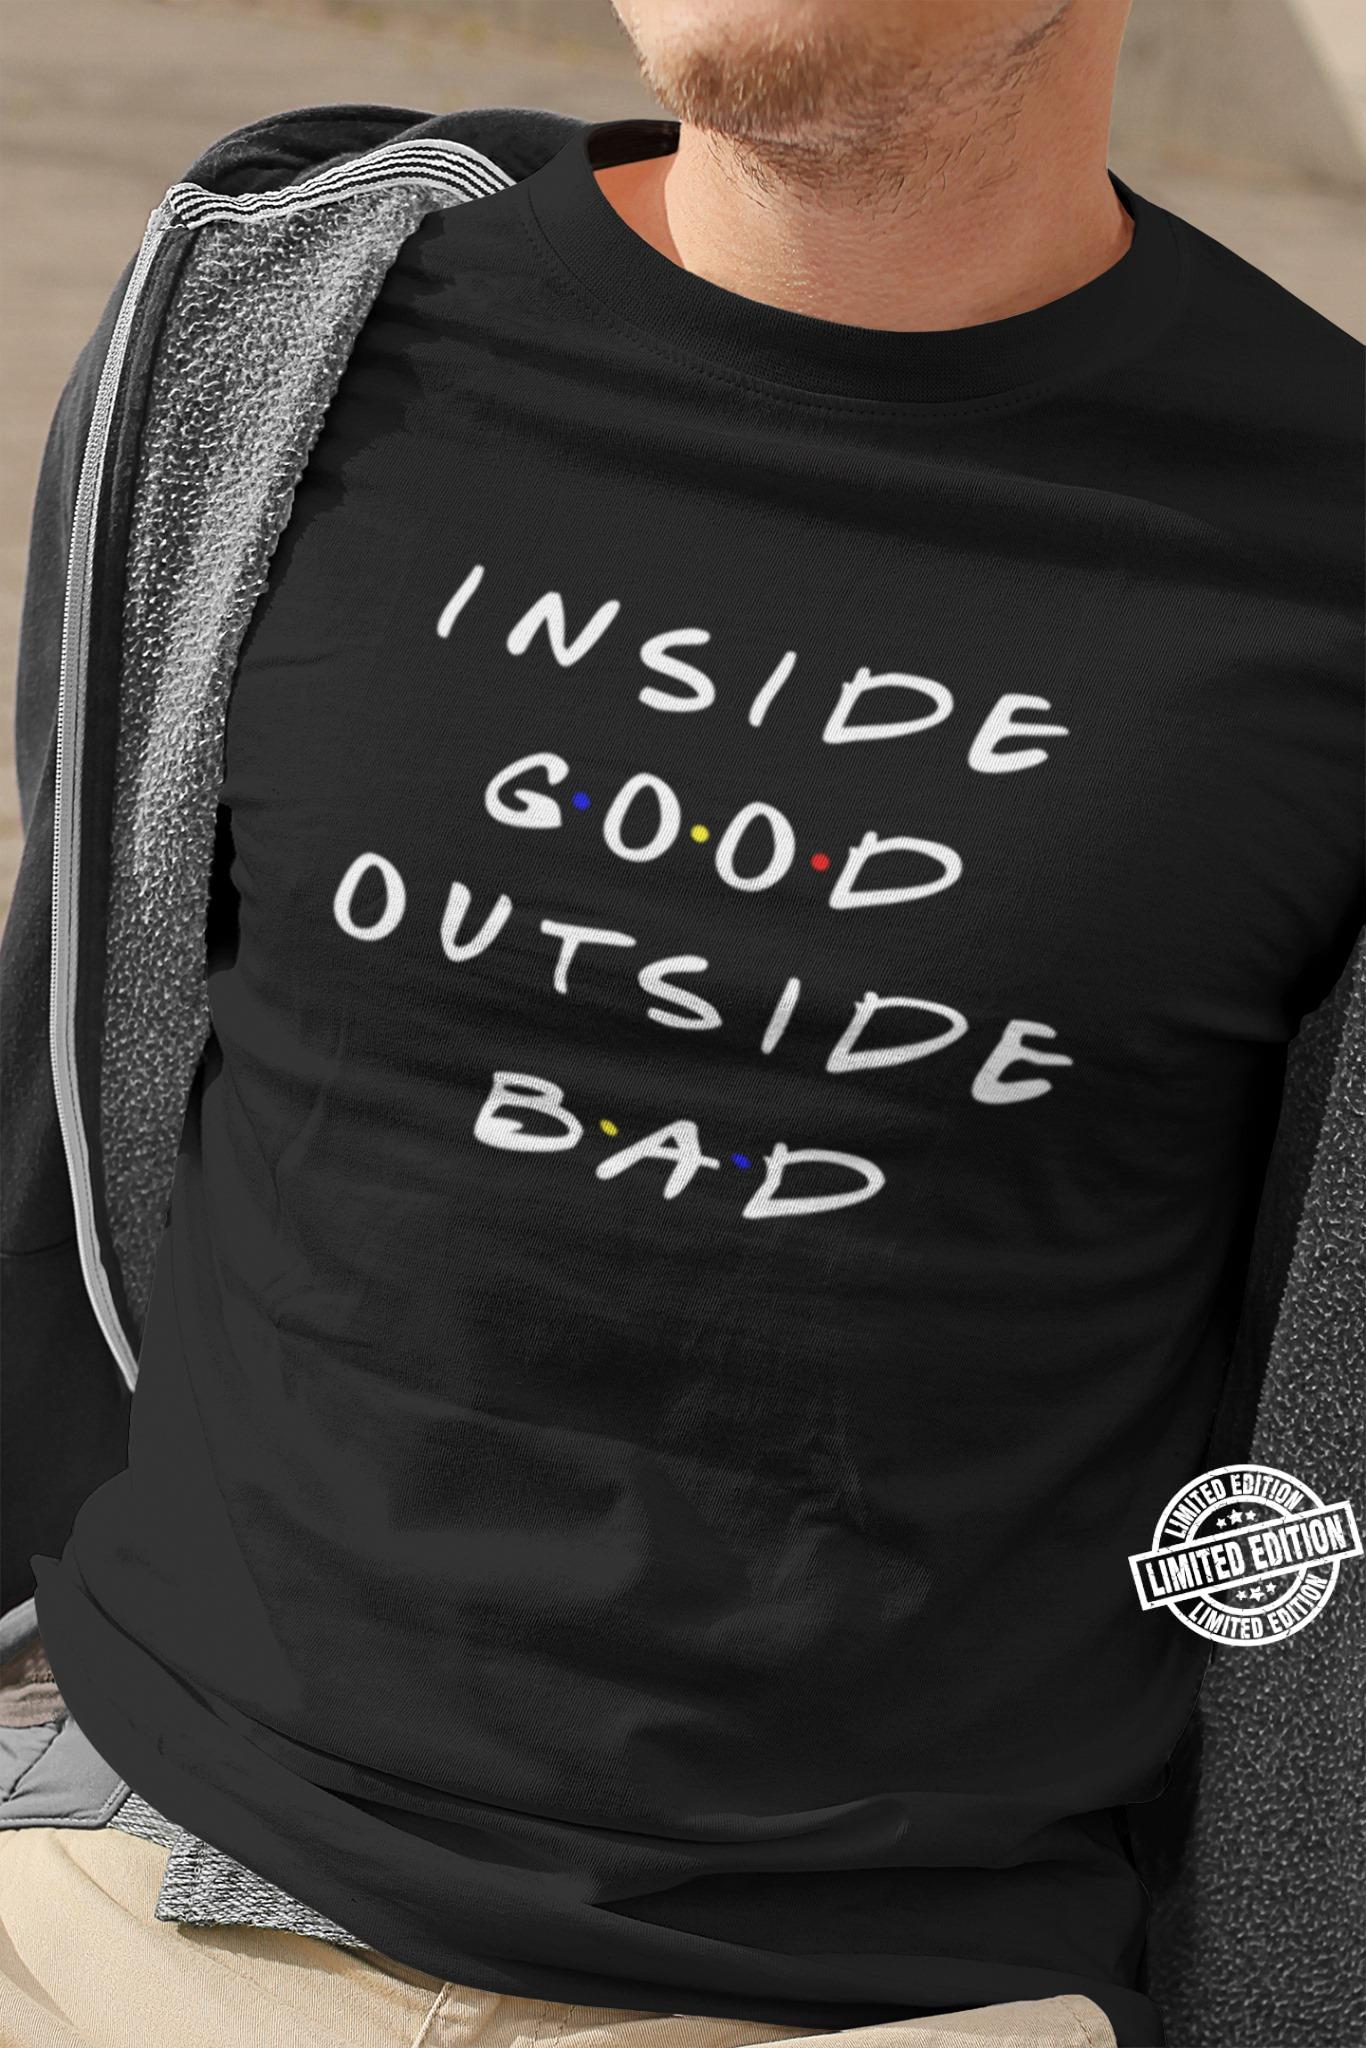 Inside good outside bad shirt